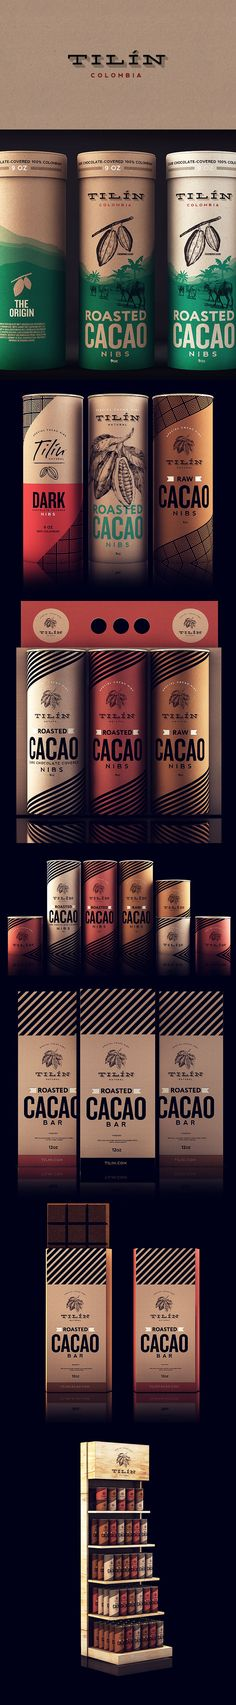 This design puts cocoa and chocolate right in the category of high end products, where they actully belong.